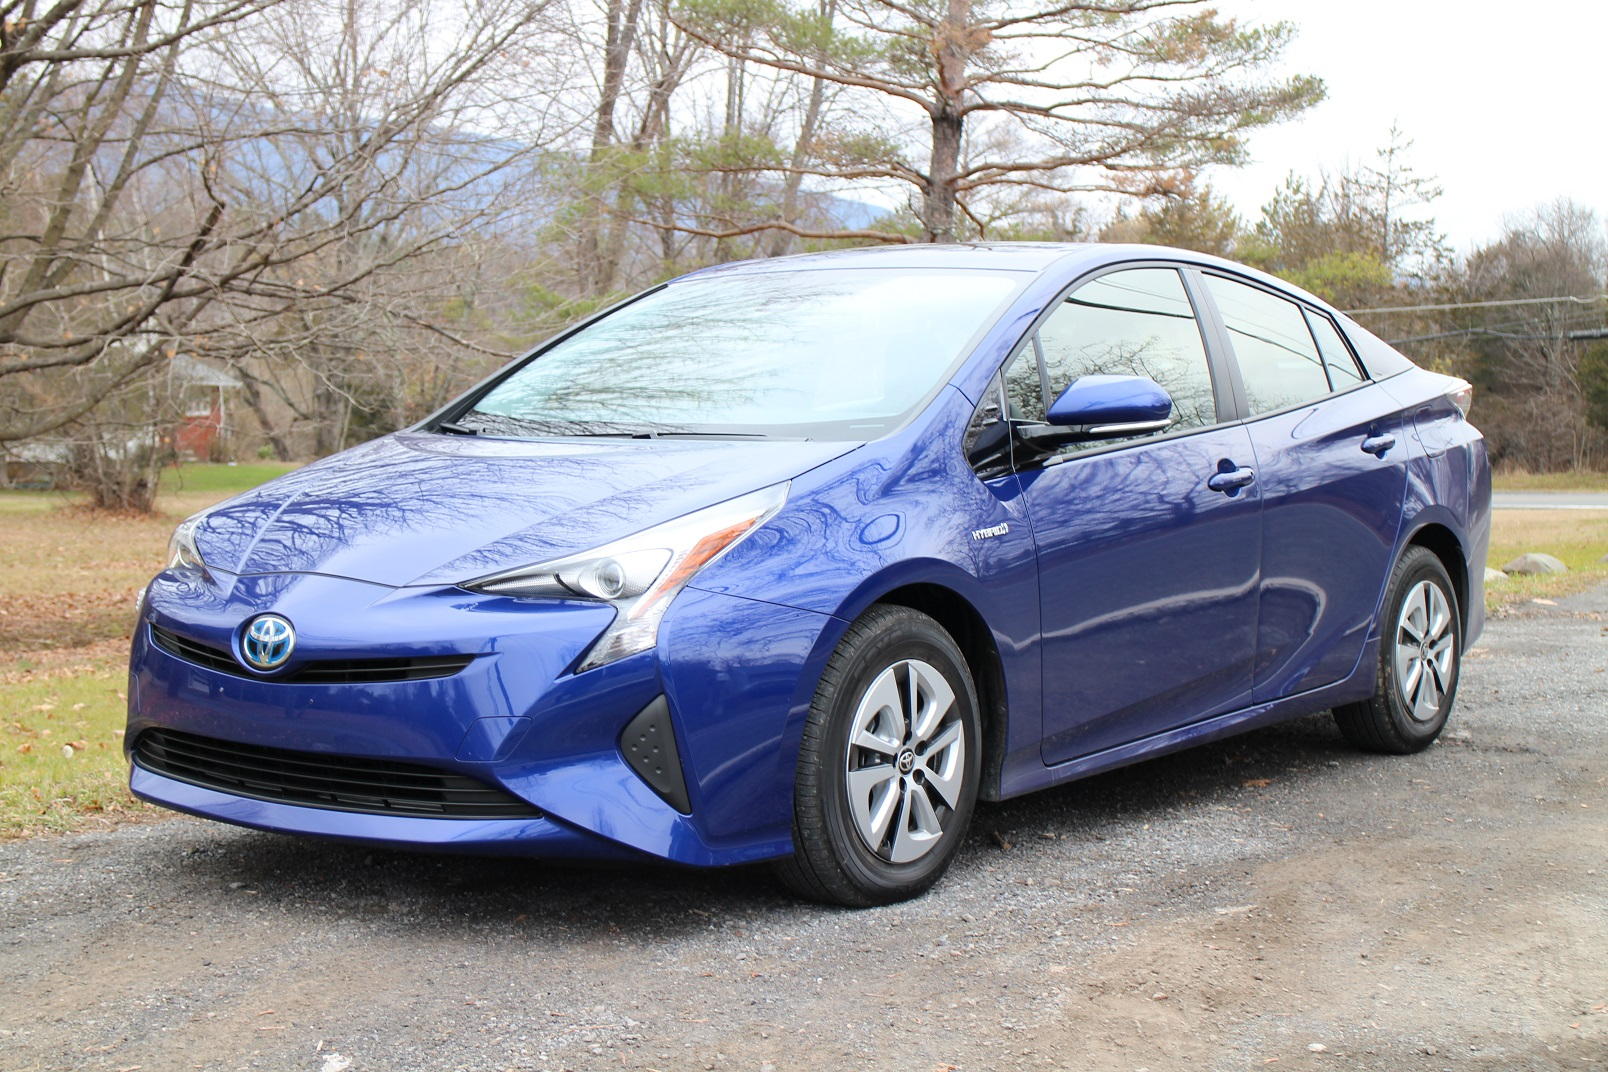 2016 Toyota Prius Gas Mileage Review Of 50 Mpg Plus Hybrid